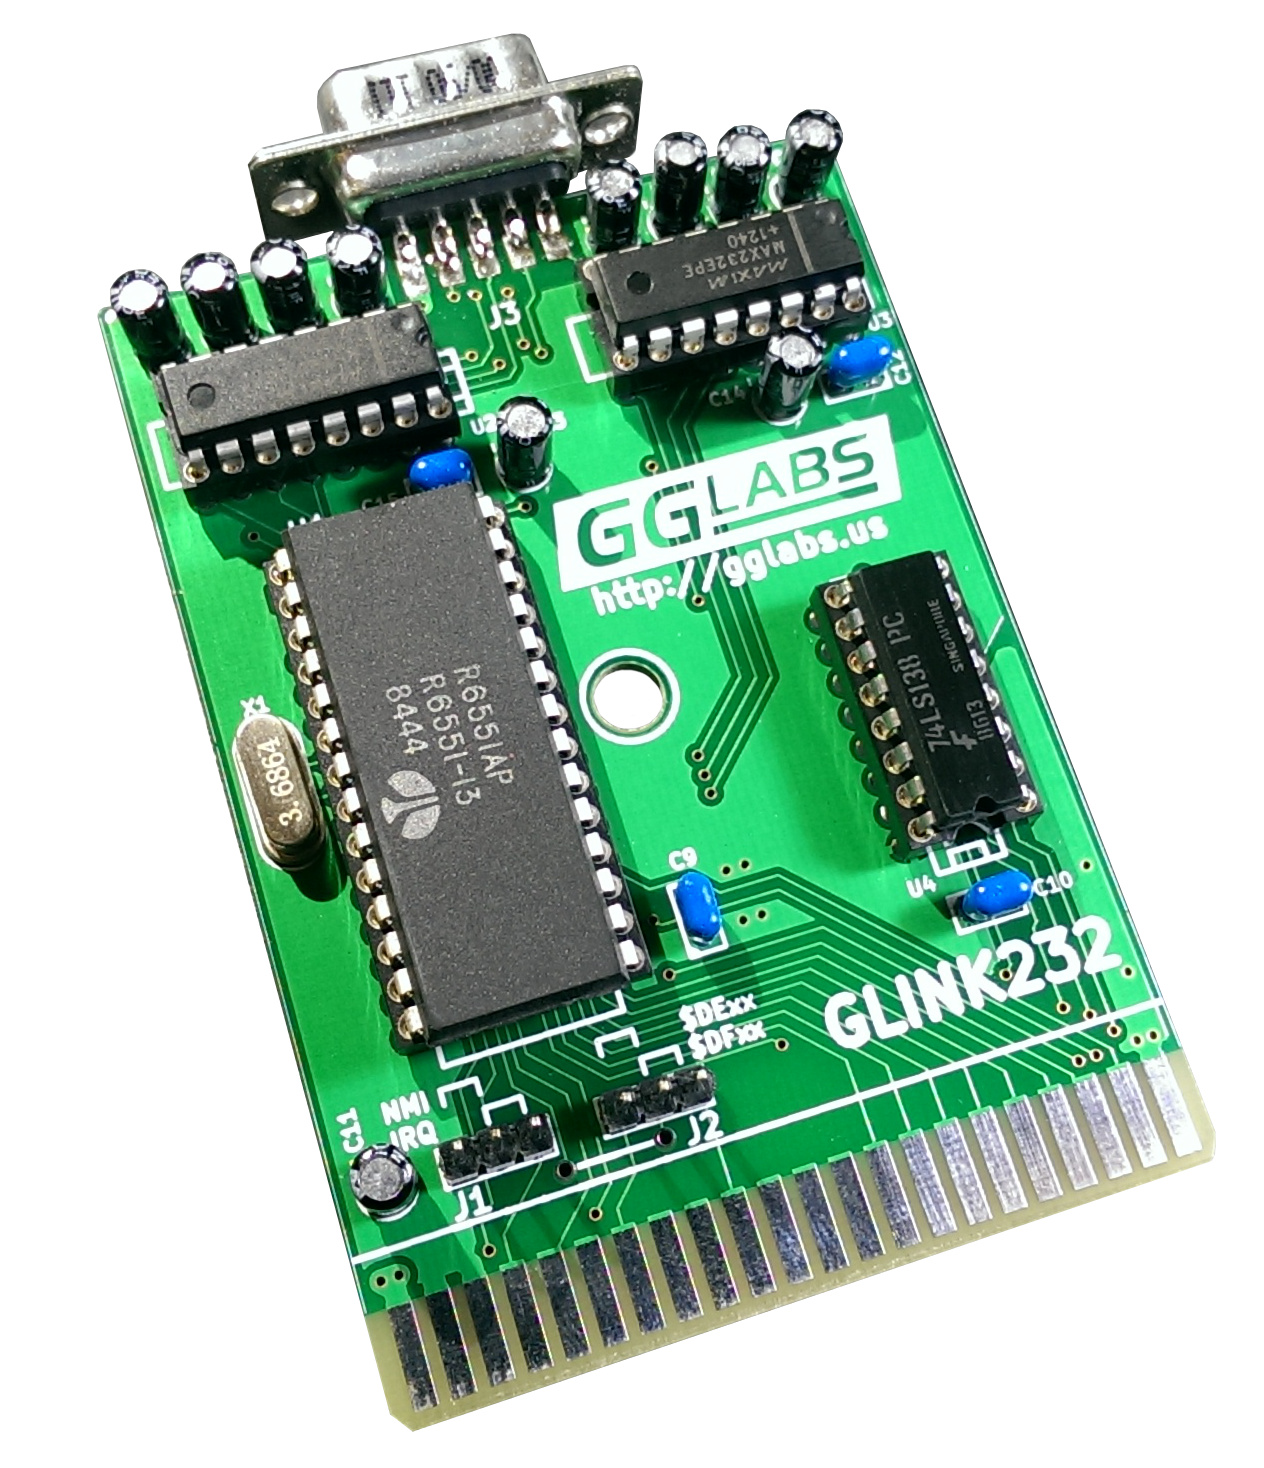 GLINK232-A01 - UART cartridge for Commodore 64/128   gglabs us